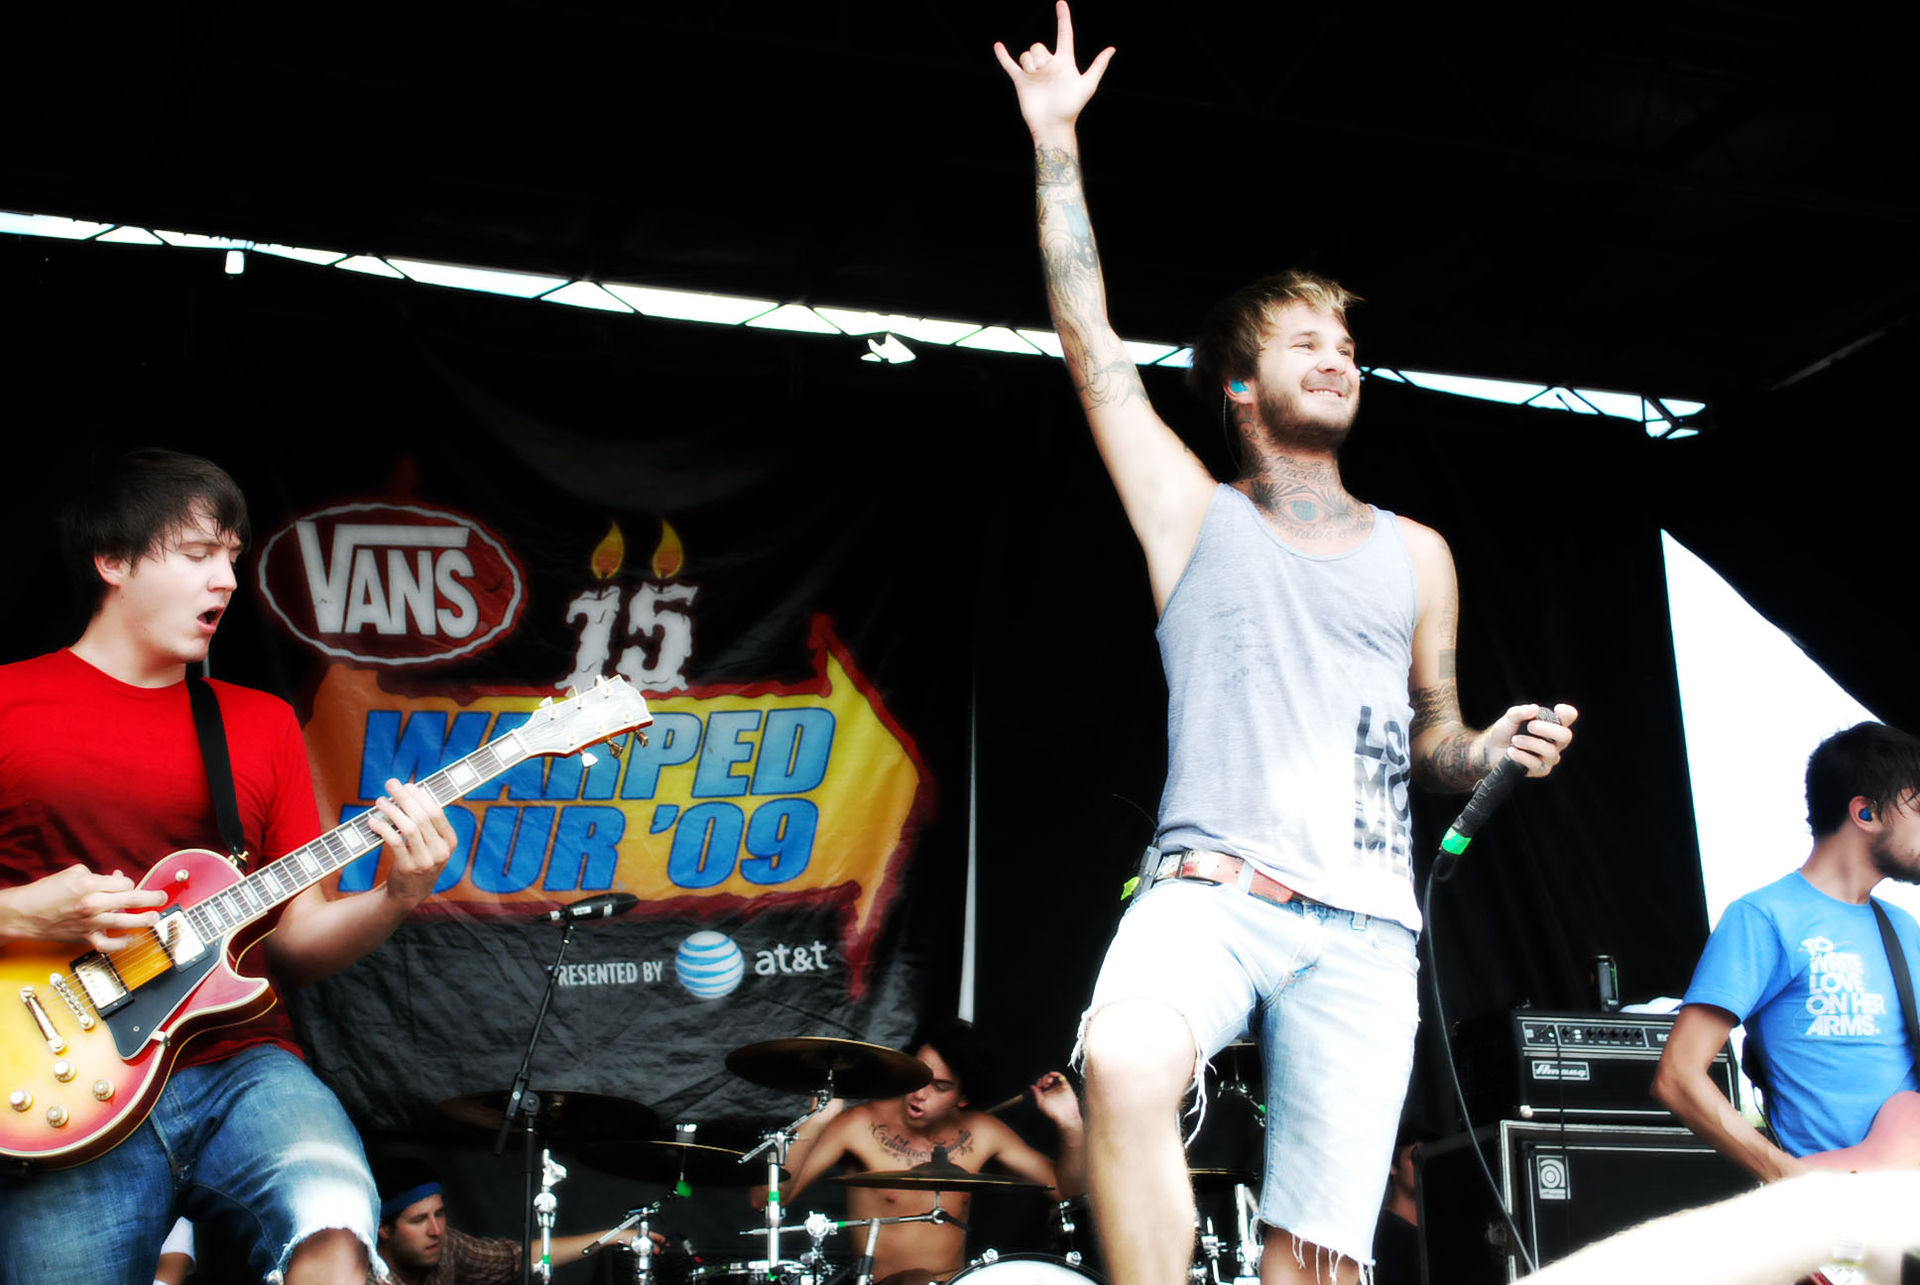 Chiodos performing at Warped Tour in 2009